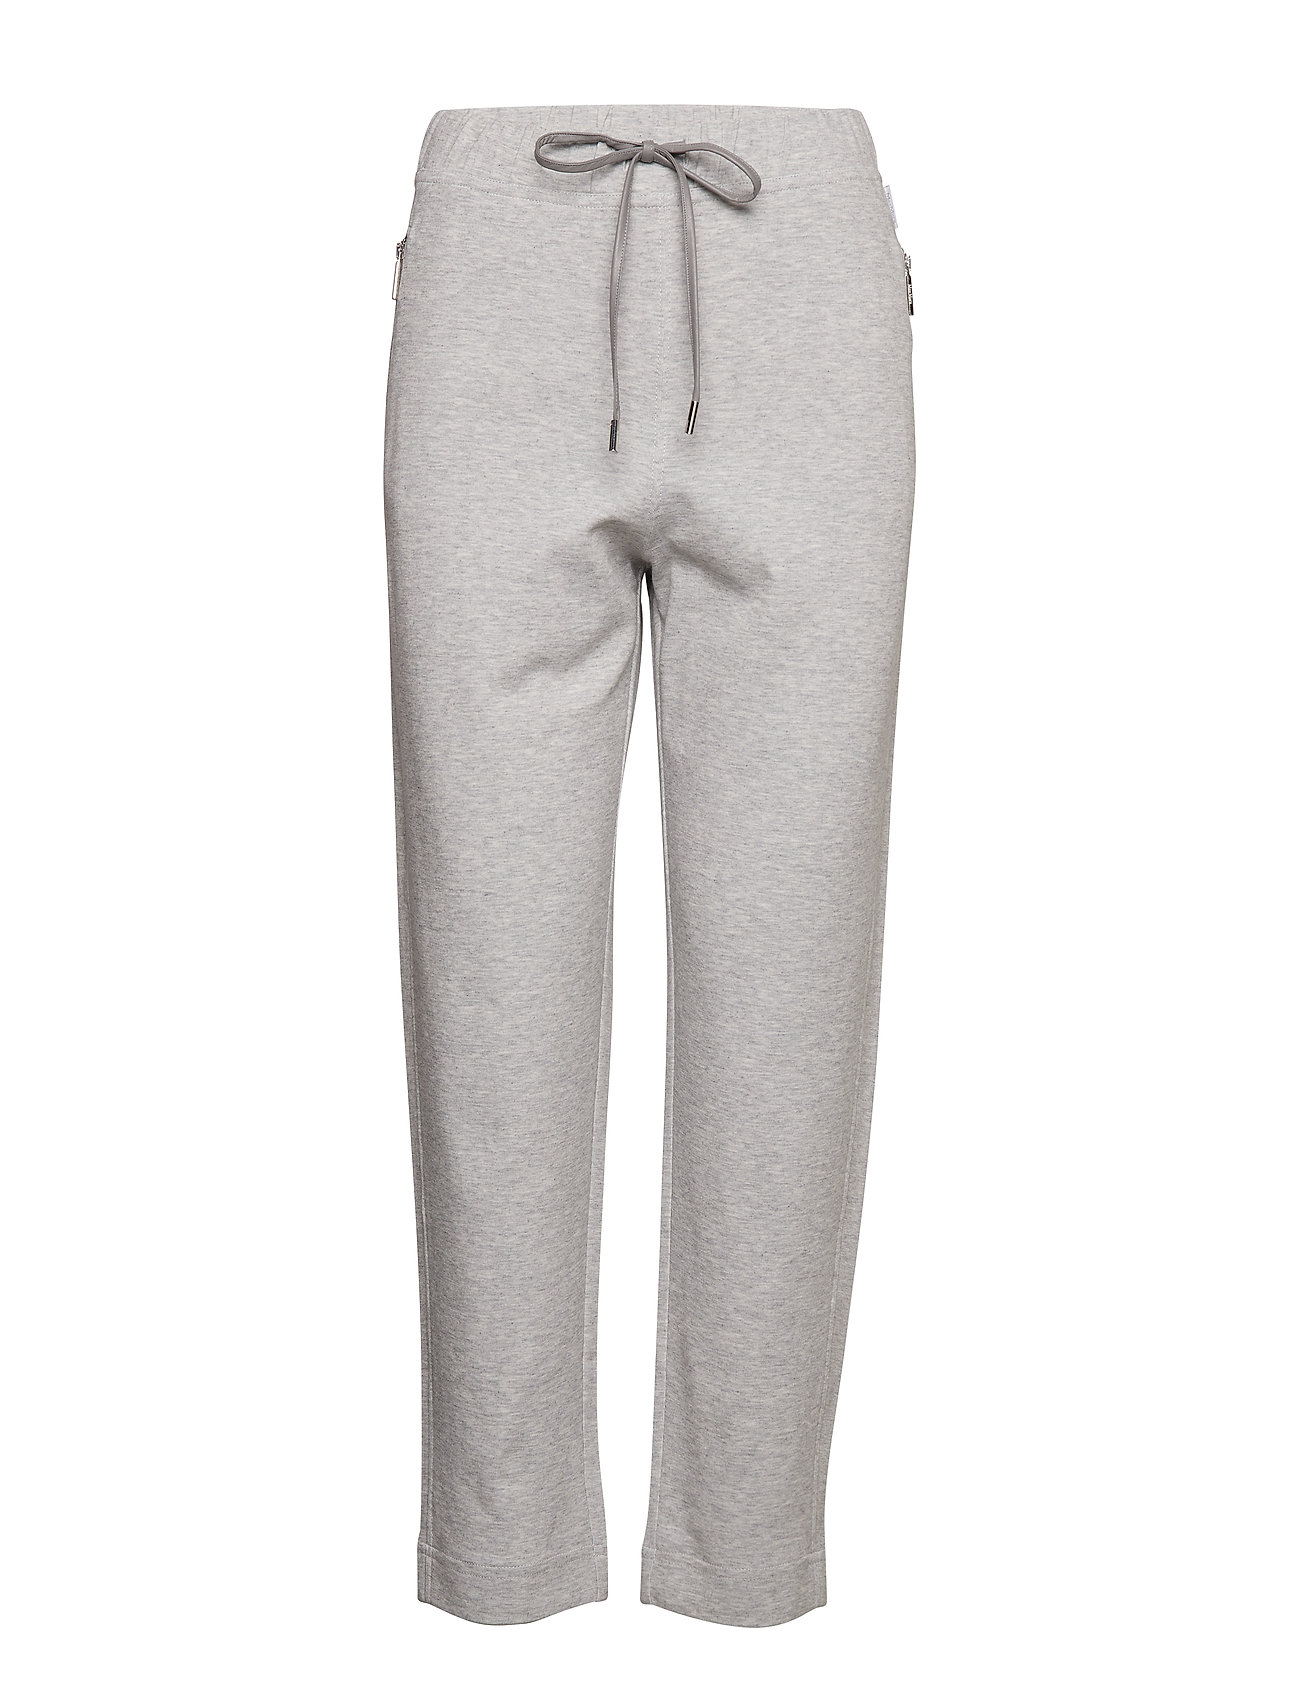 Max Mara Leisure VACILLO - LIGHT GREY MELANGE KNITTED TROUSER